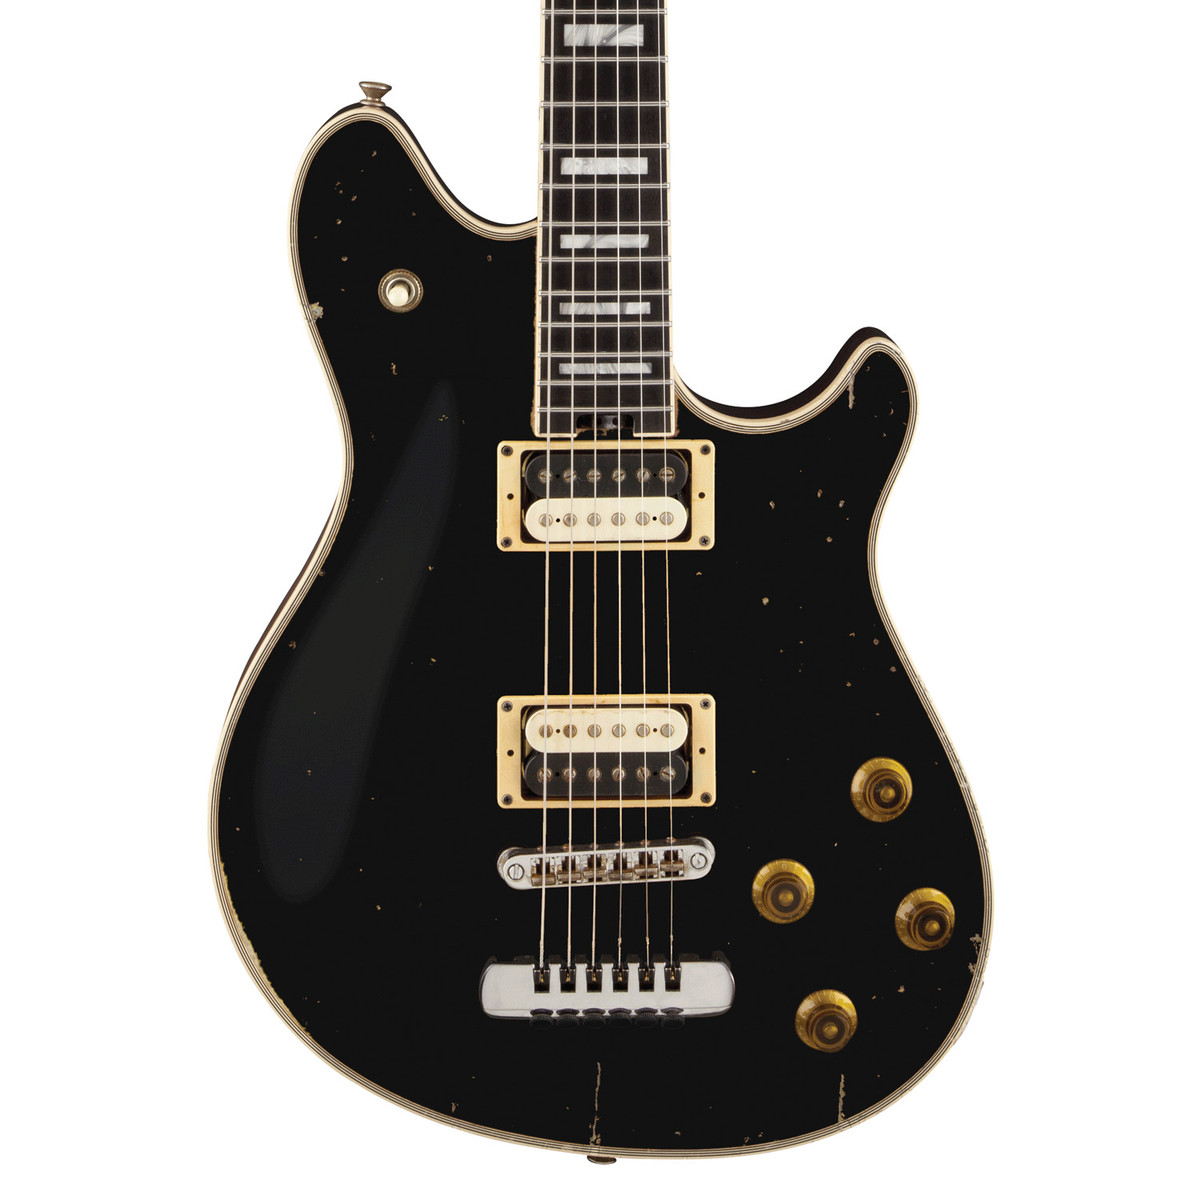 EVH Wolfgang USA Custom Relic Electric Guitar, Black at